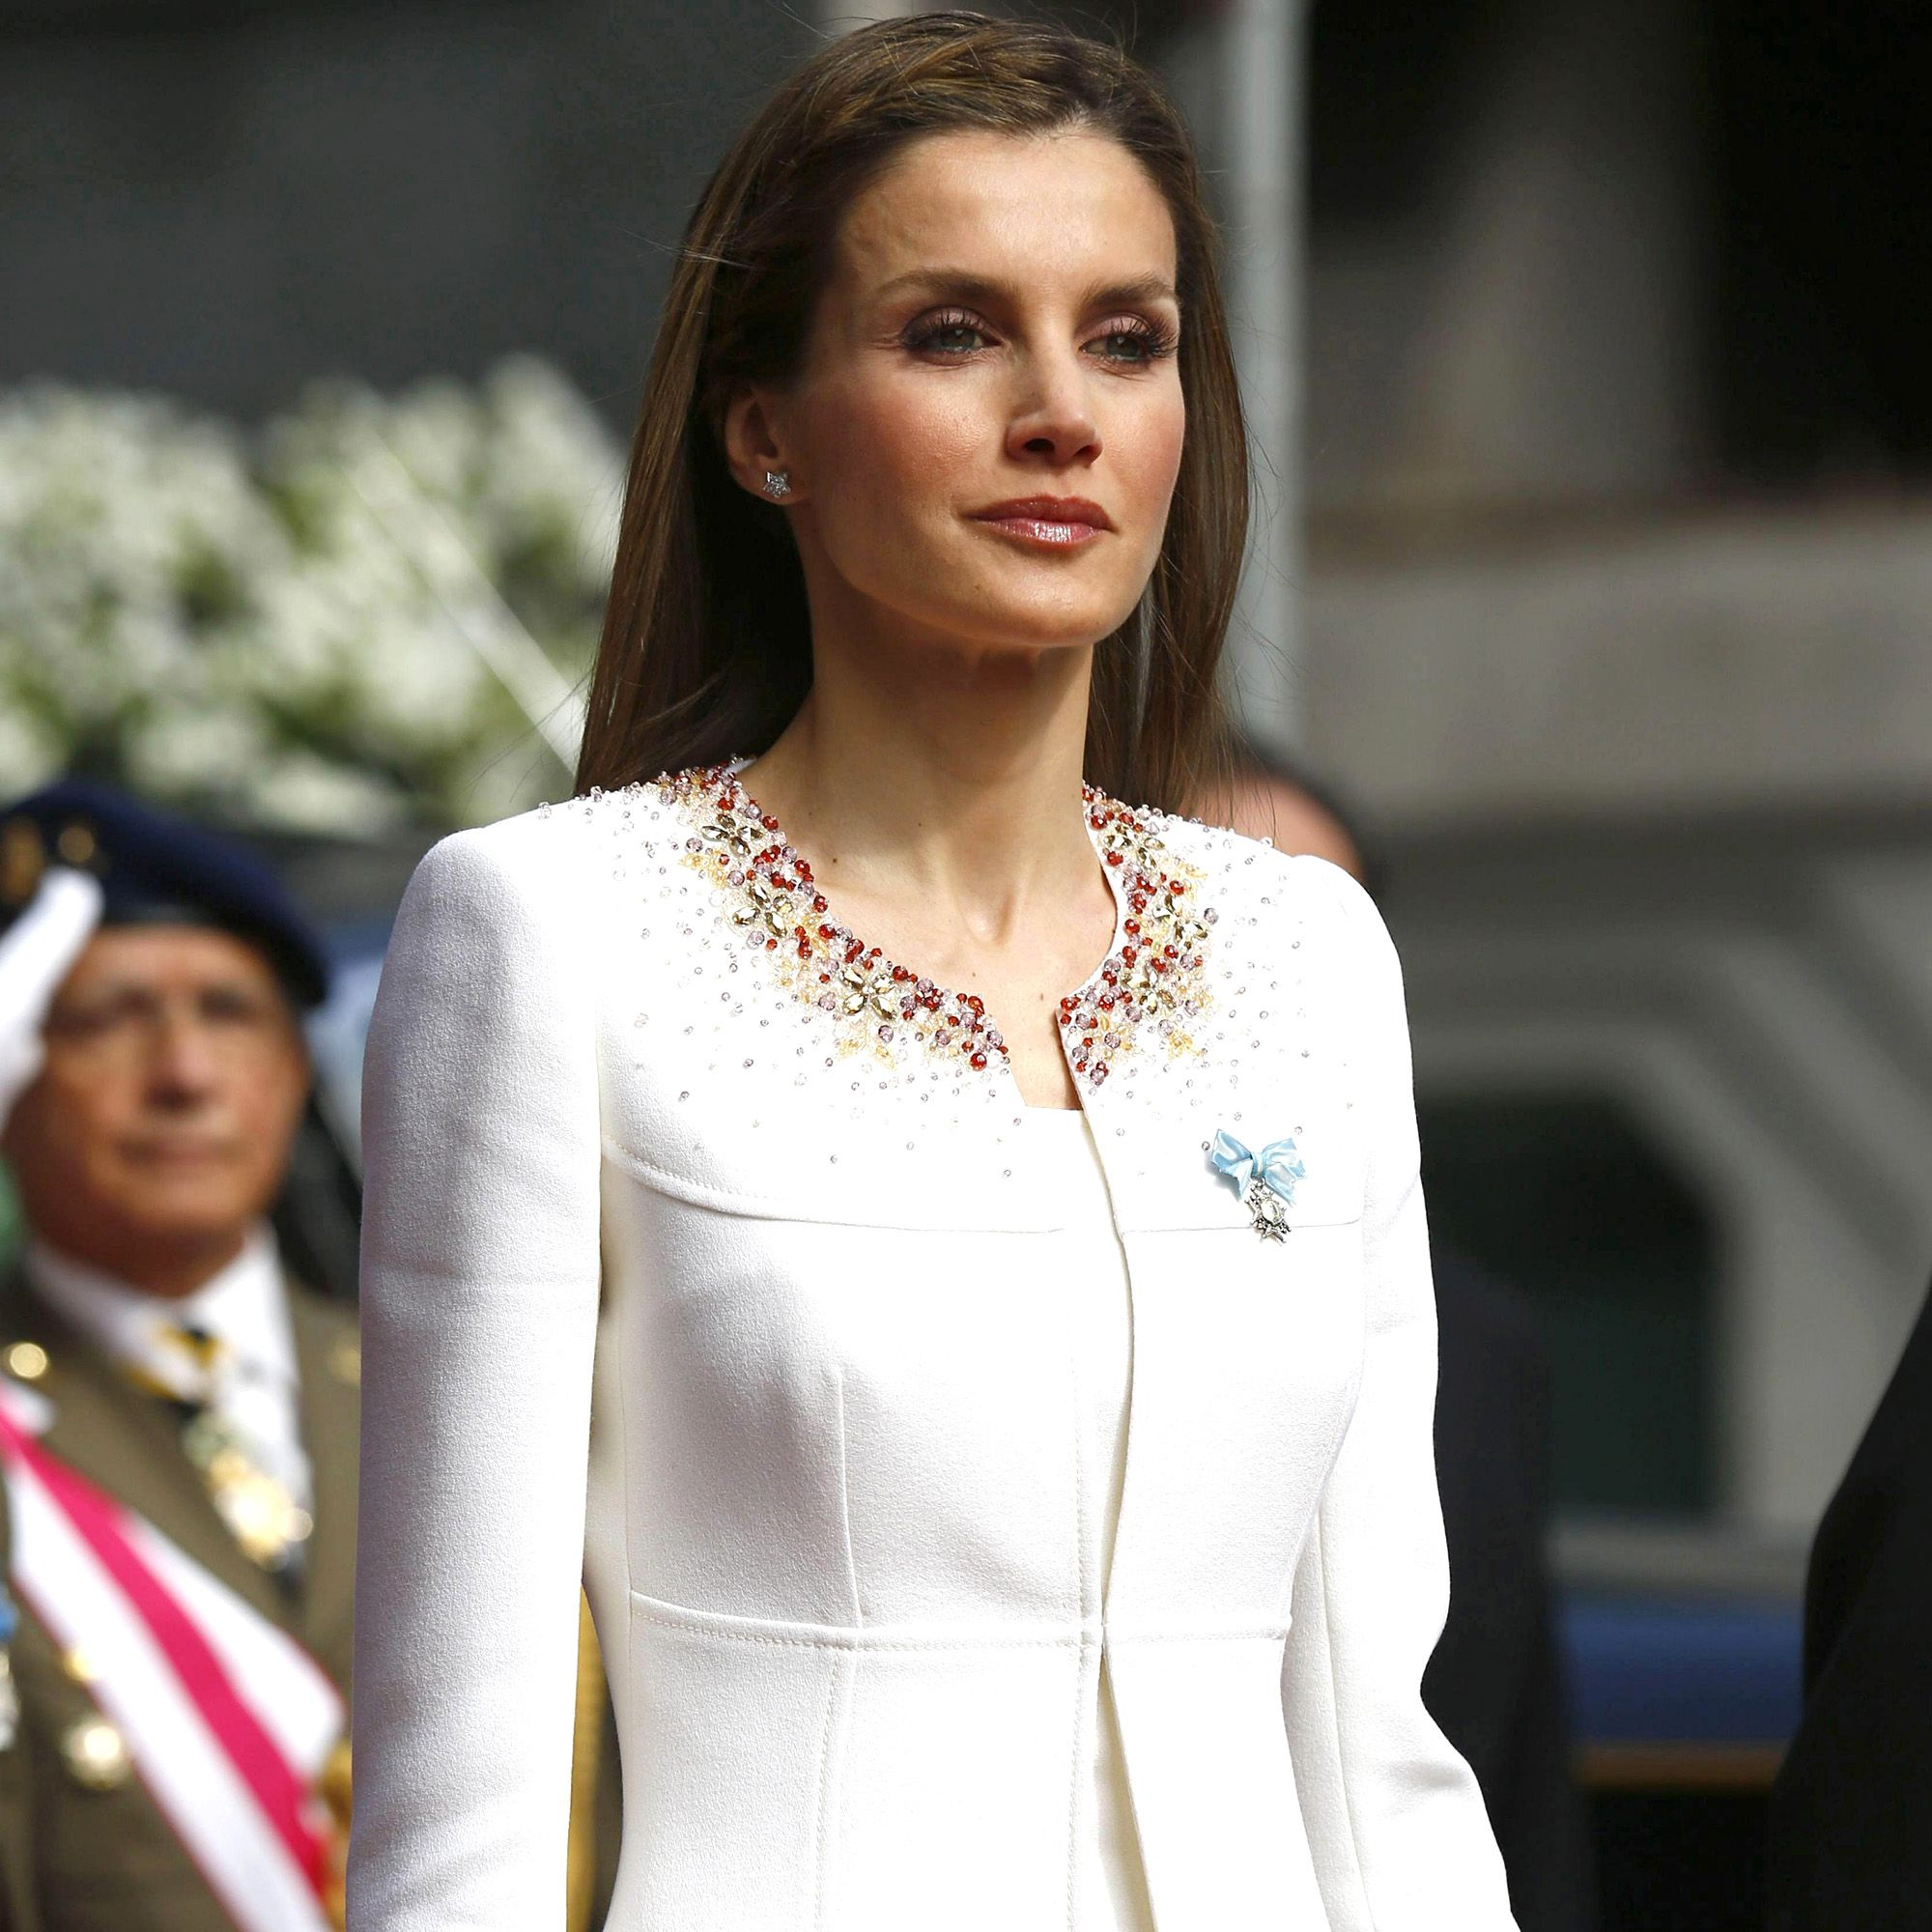 MADRID, SPAIN - JUNE 19: Queen Letizia of Spain arrives at the Congress of Deputies prior to the King's official coronation ceremony on June 19, 2014 in Madrid, Spain. The coronation of King Felipe VI is held in Madrid. His father, the former King Juan Carlos of Spain abdicated on June 2nd after a 39 year reign. The new King is joined by his wife Queen Letizia of Spain.  (Photo by Sergio Barrenechea /EFE - Pool Getty Images)